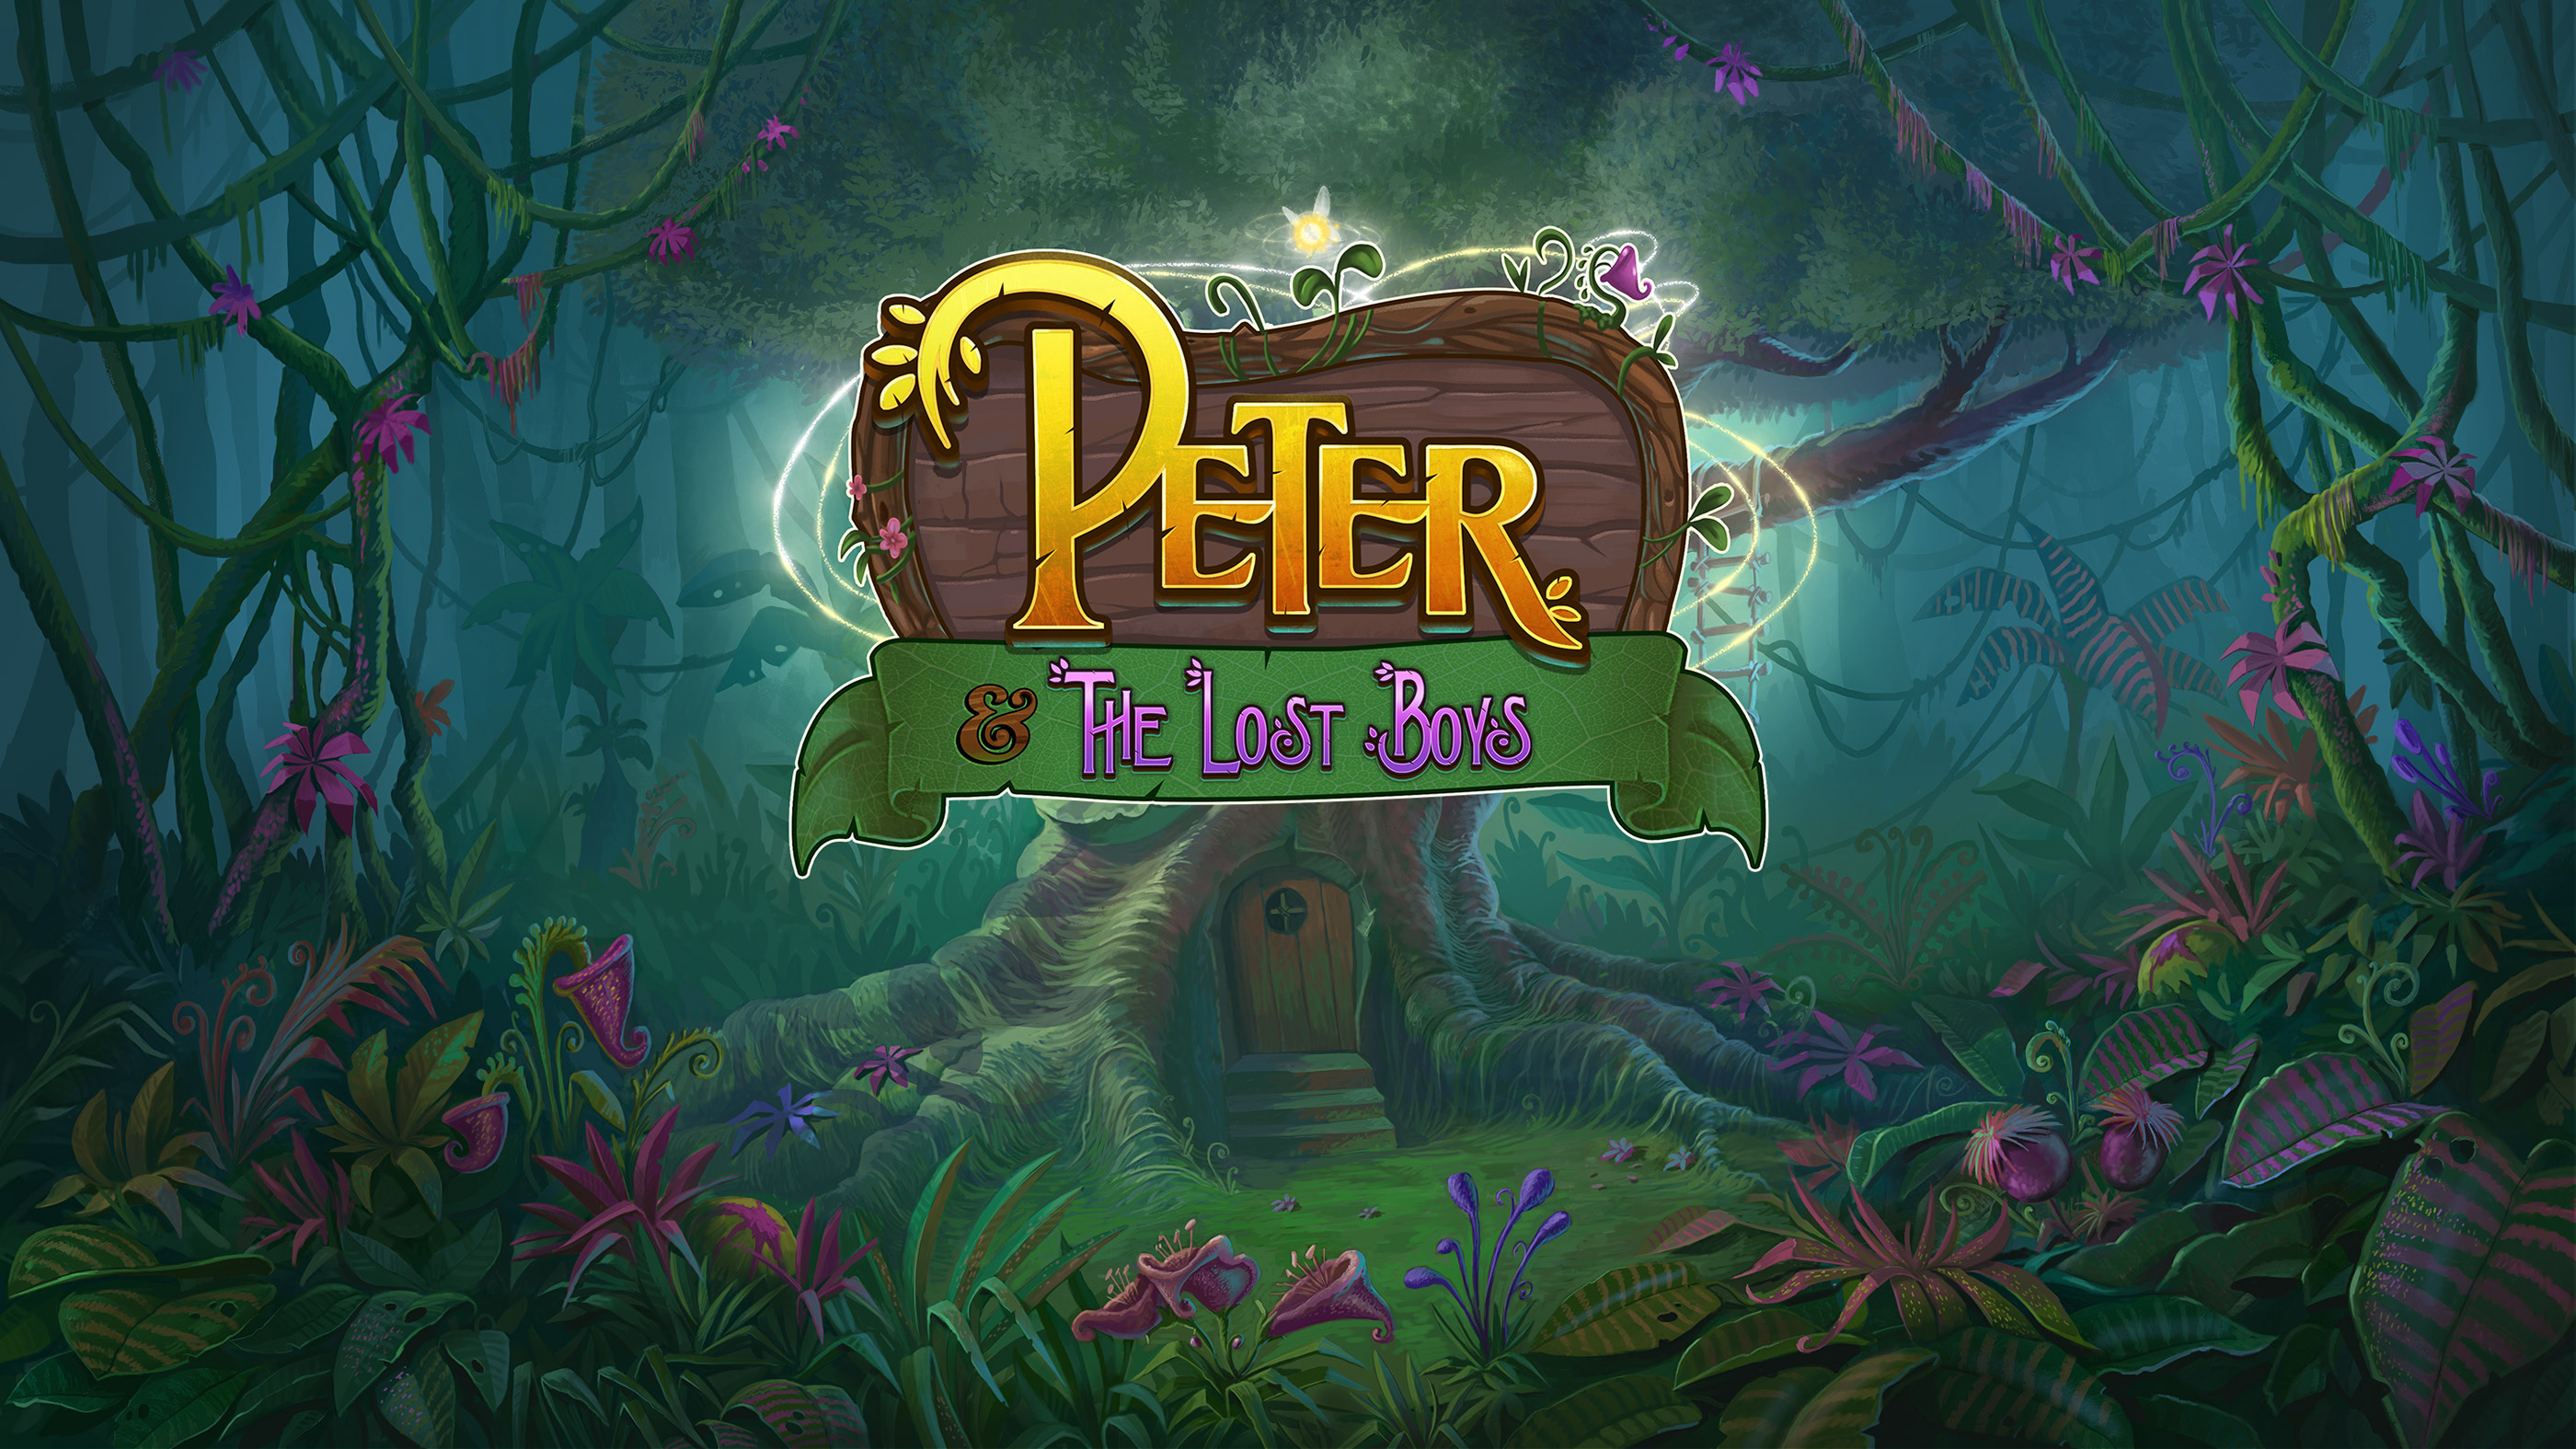 Peter & The Lost Boys: a description of the game, travel to the world of neverland